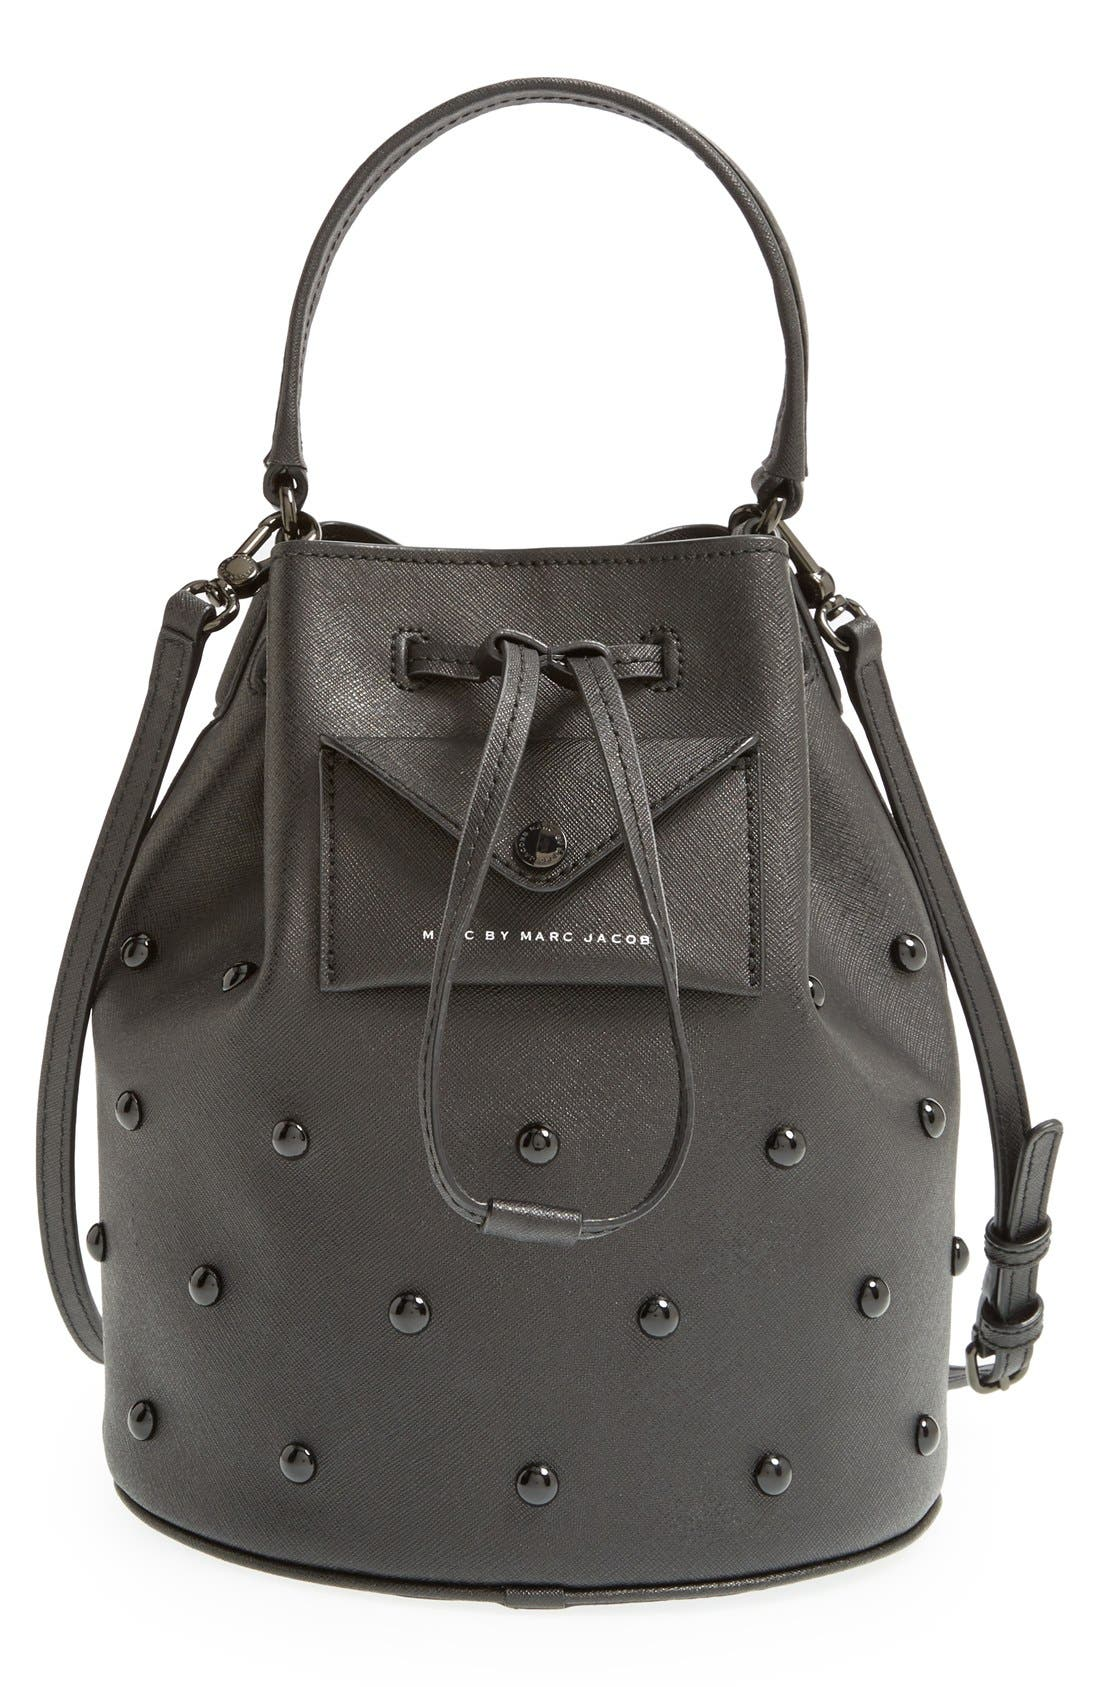 MARC JACOBS MARC BY MARC JACOBS 'Metropoli' Studded Leather Bucket Bag, Main, color, 001